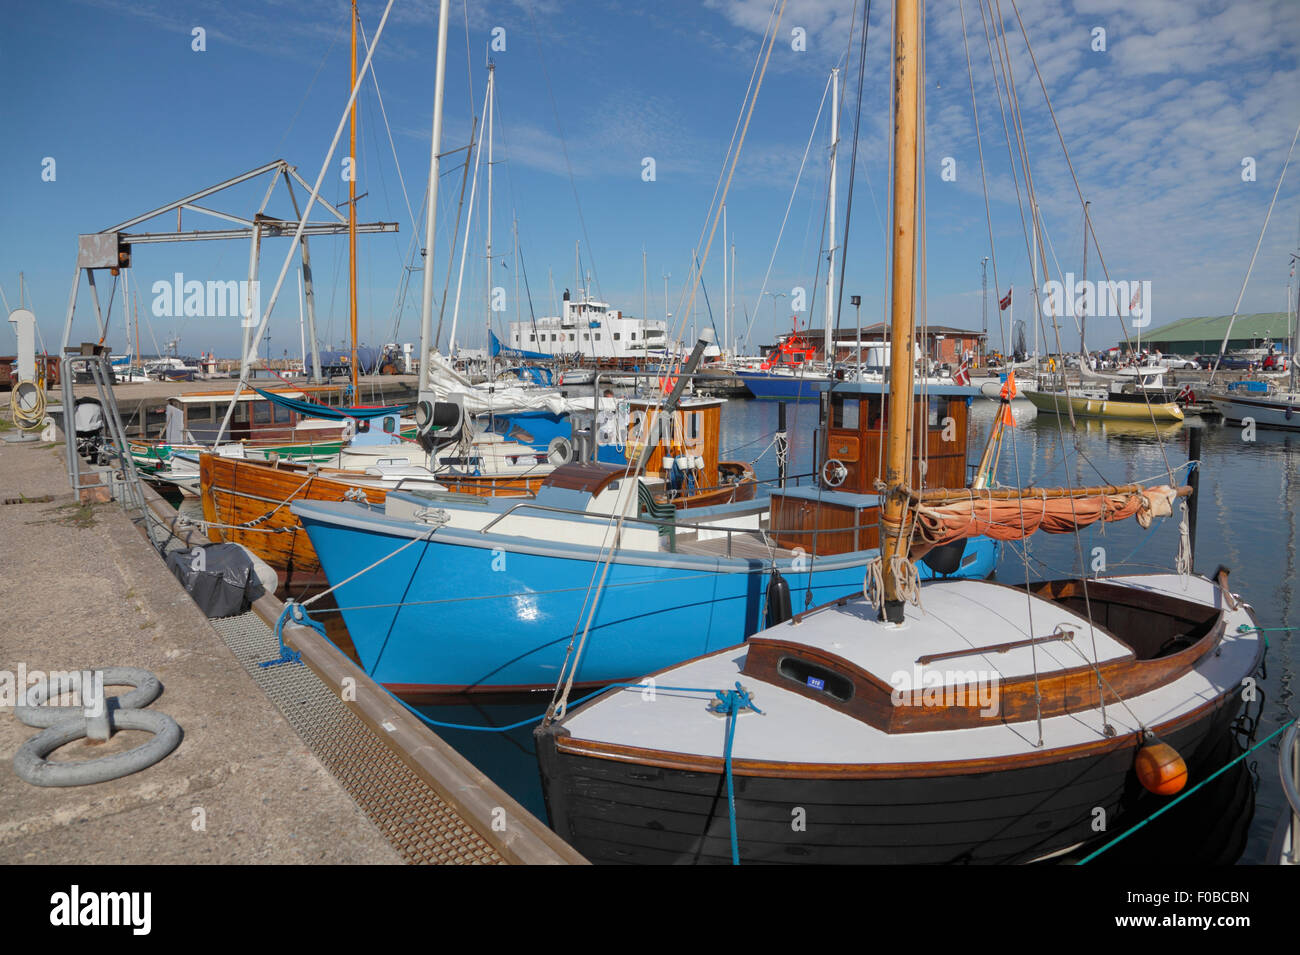 Colourful boats in Hundested Harbour on the corner of Kattegat and the inlet Isefjord. - Stock Image